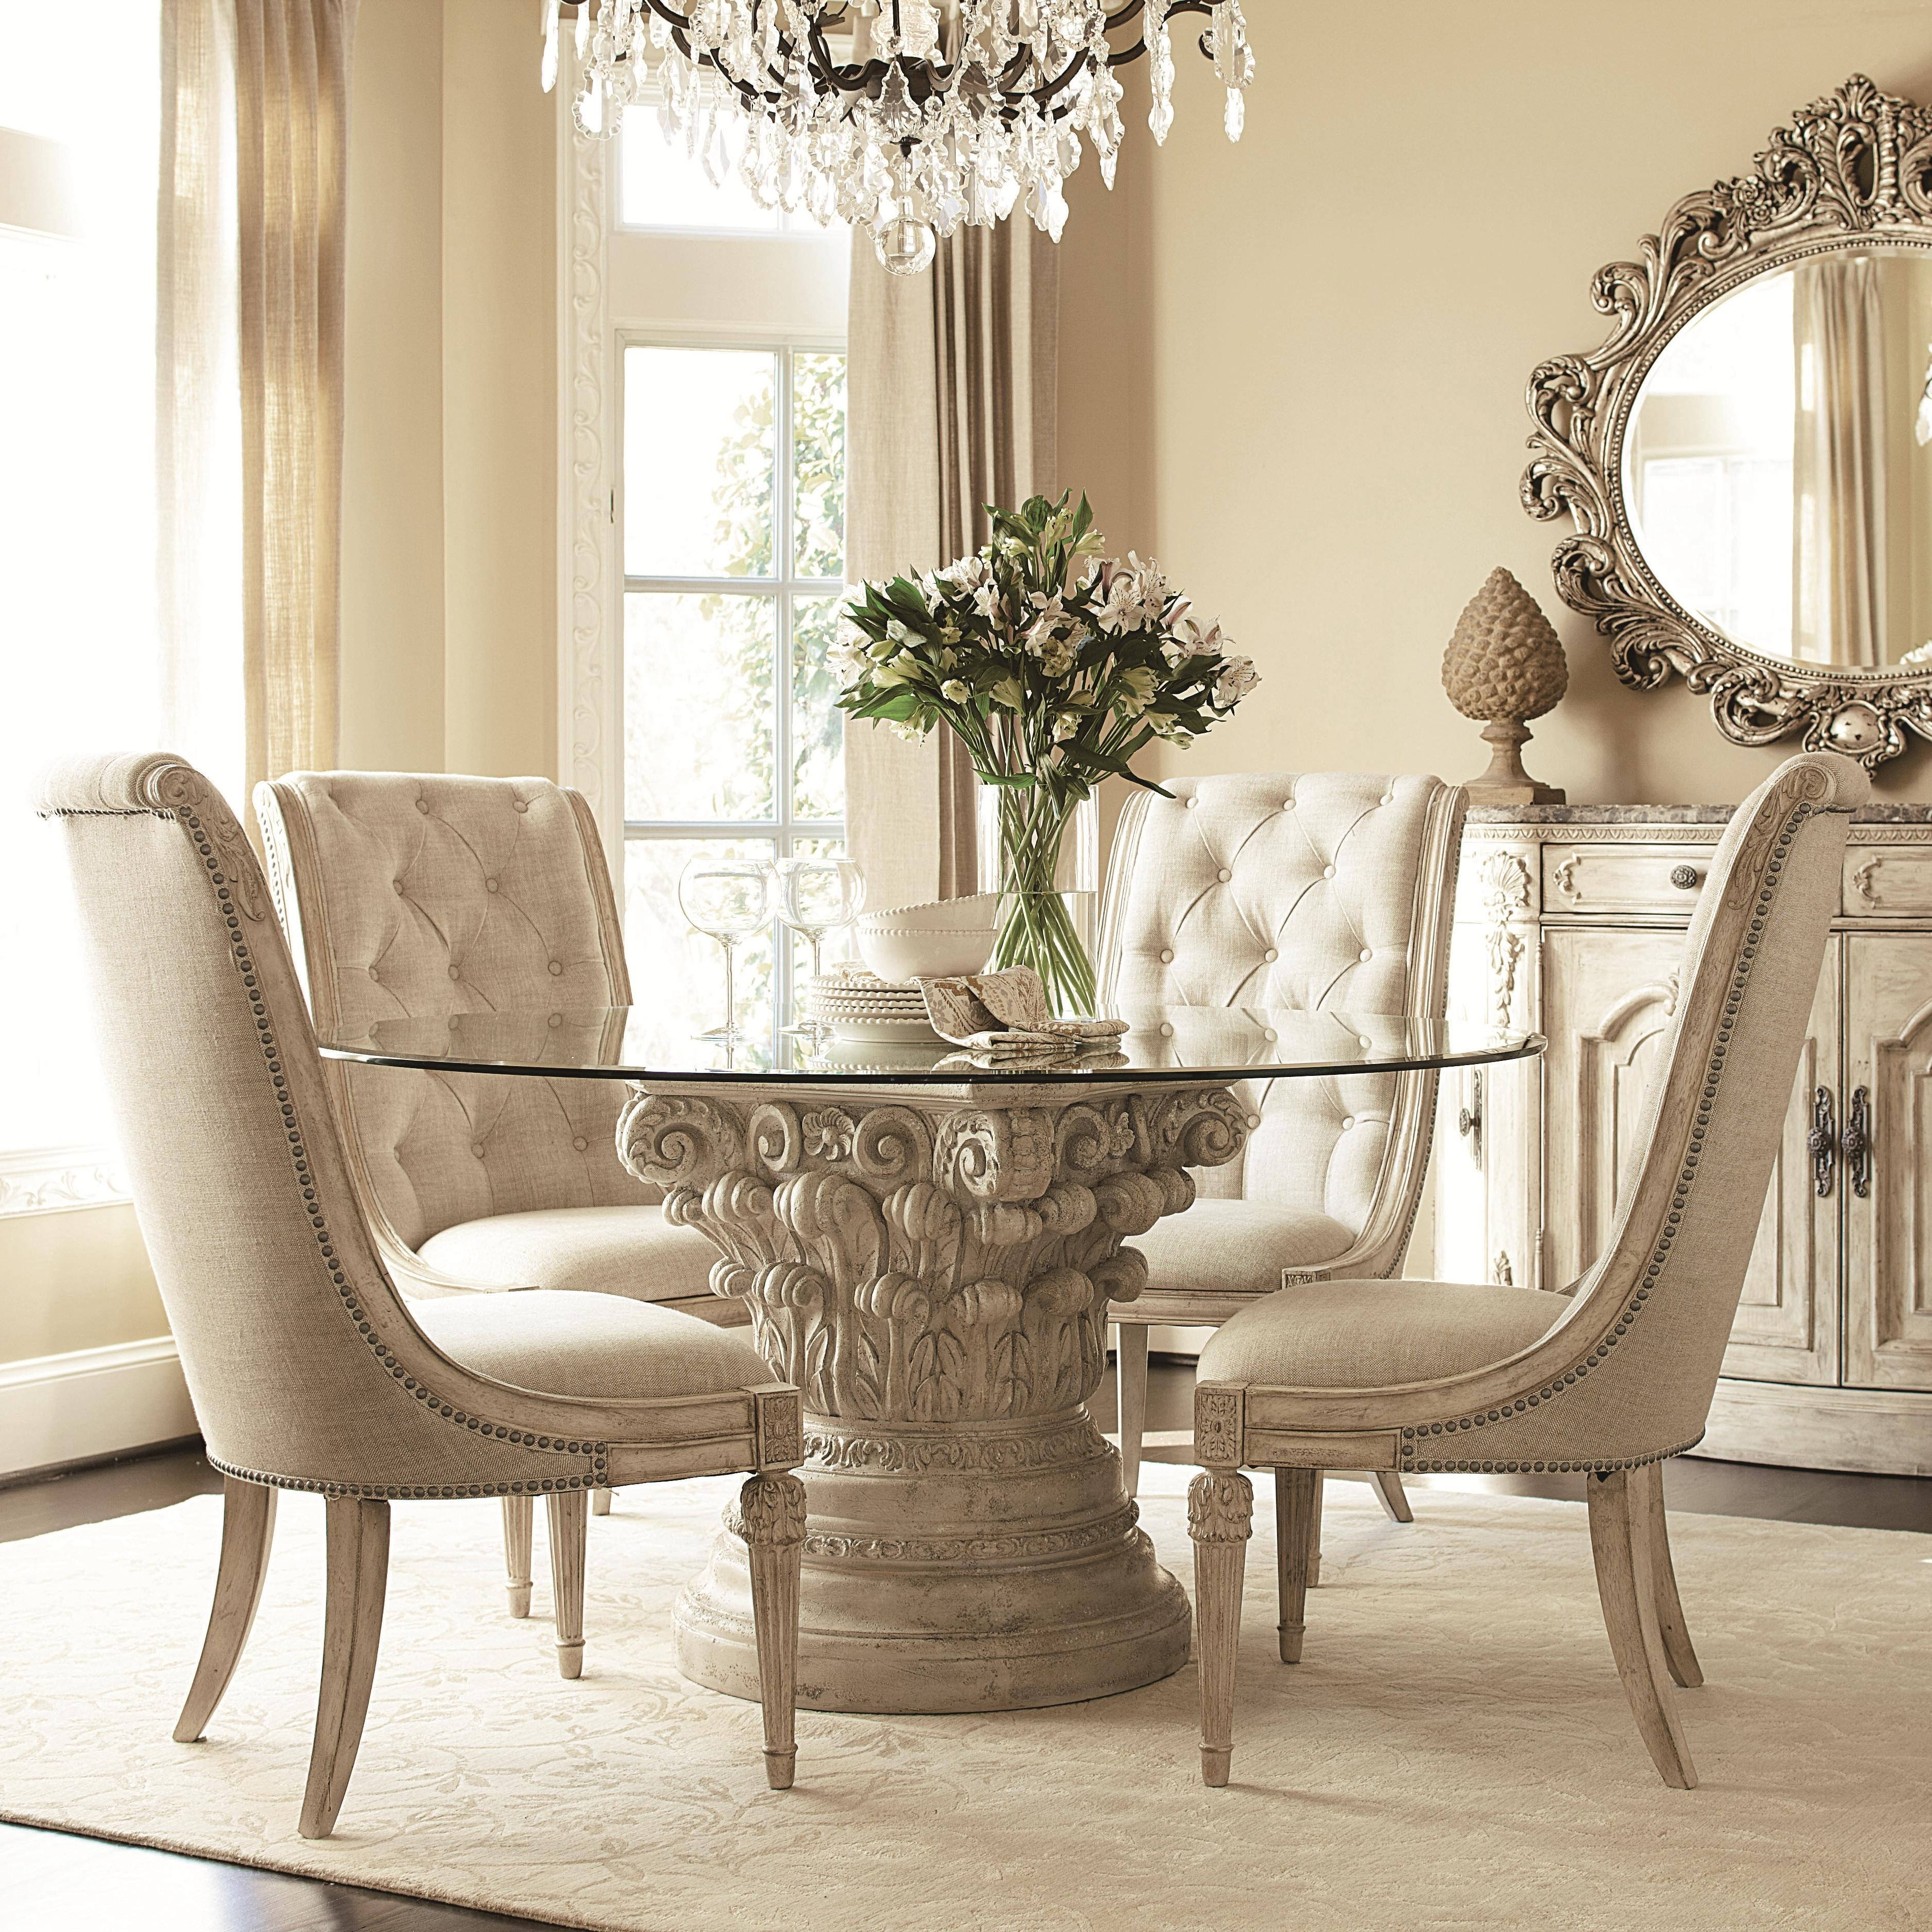 American Drew Jessica Mcclintock Home – The Boutique Collection 5 Intended For 2018 Caira Black 5 Piece Round Dining Sets With Upholstered Side Chairs (Gallery 4 of 25)